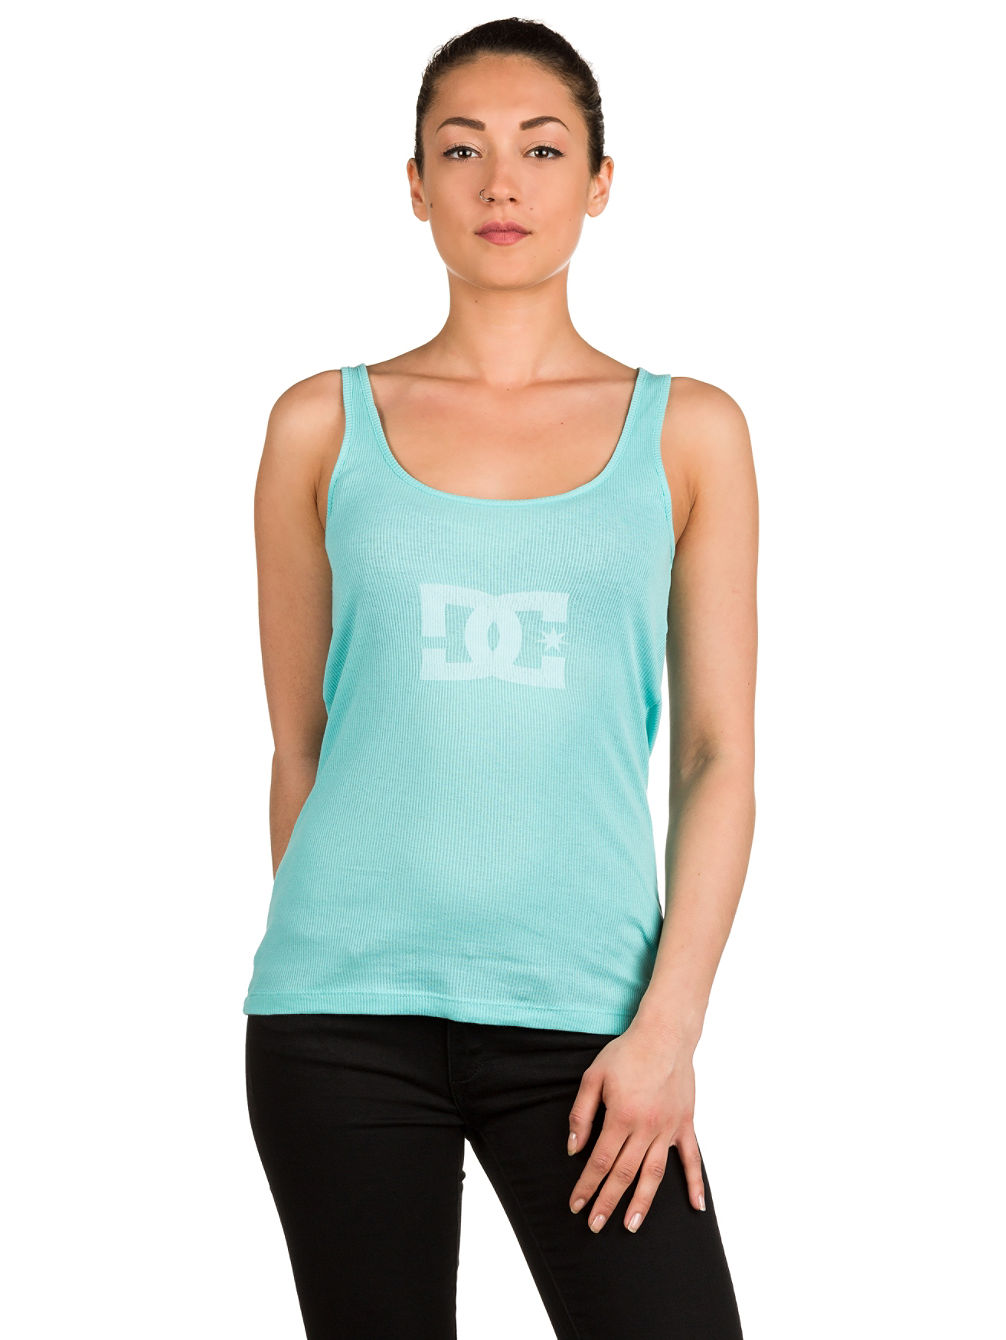 Buy DC Star Tank Top online at blue-tomato.com